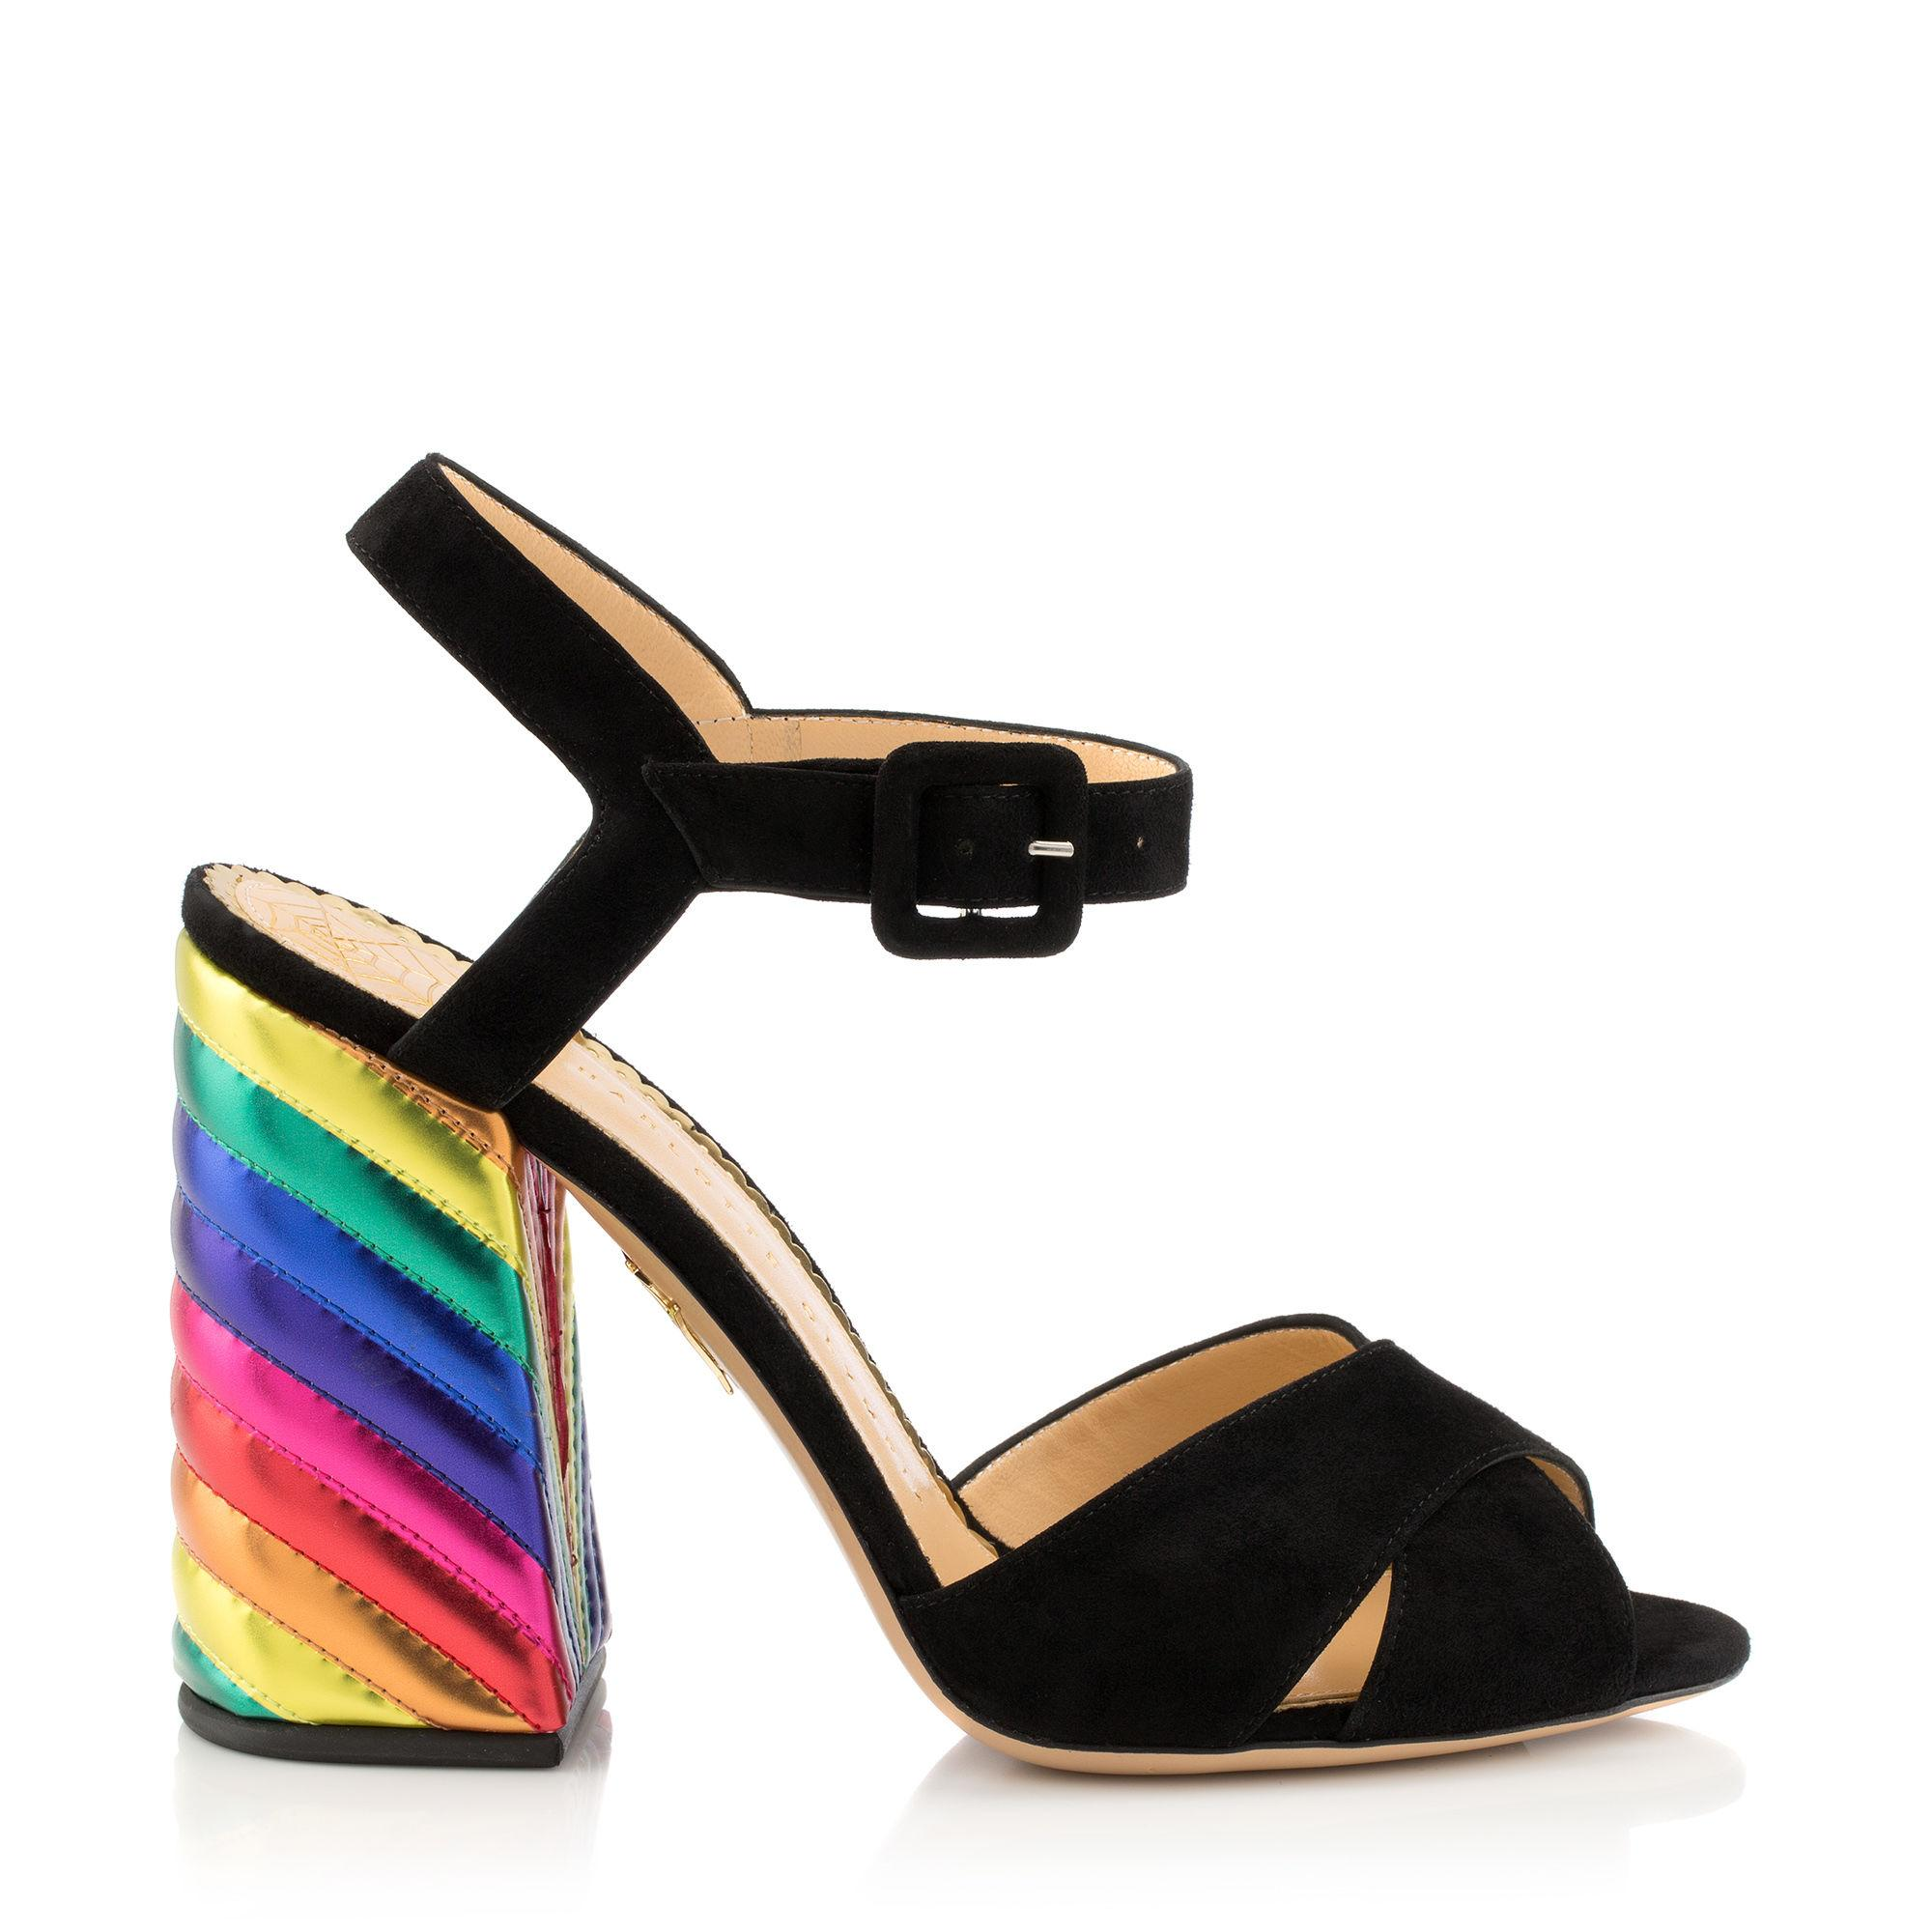 5d1d4895323 Charlotte Olympia Emma Black Suede And Rainbow Patent Leather High Heel  Sandals